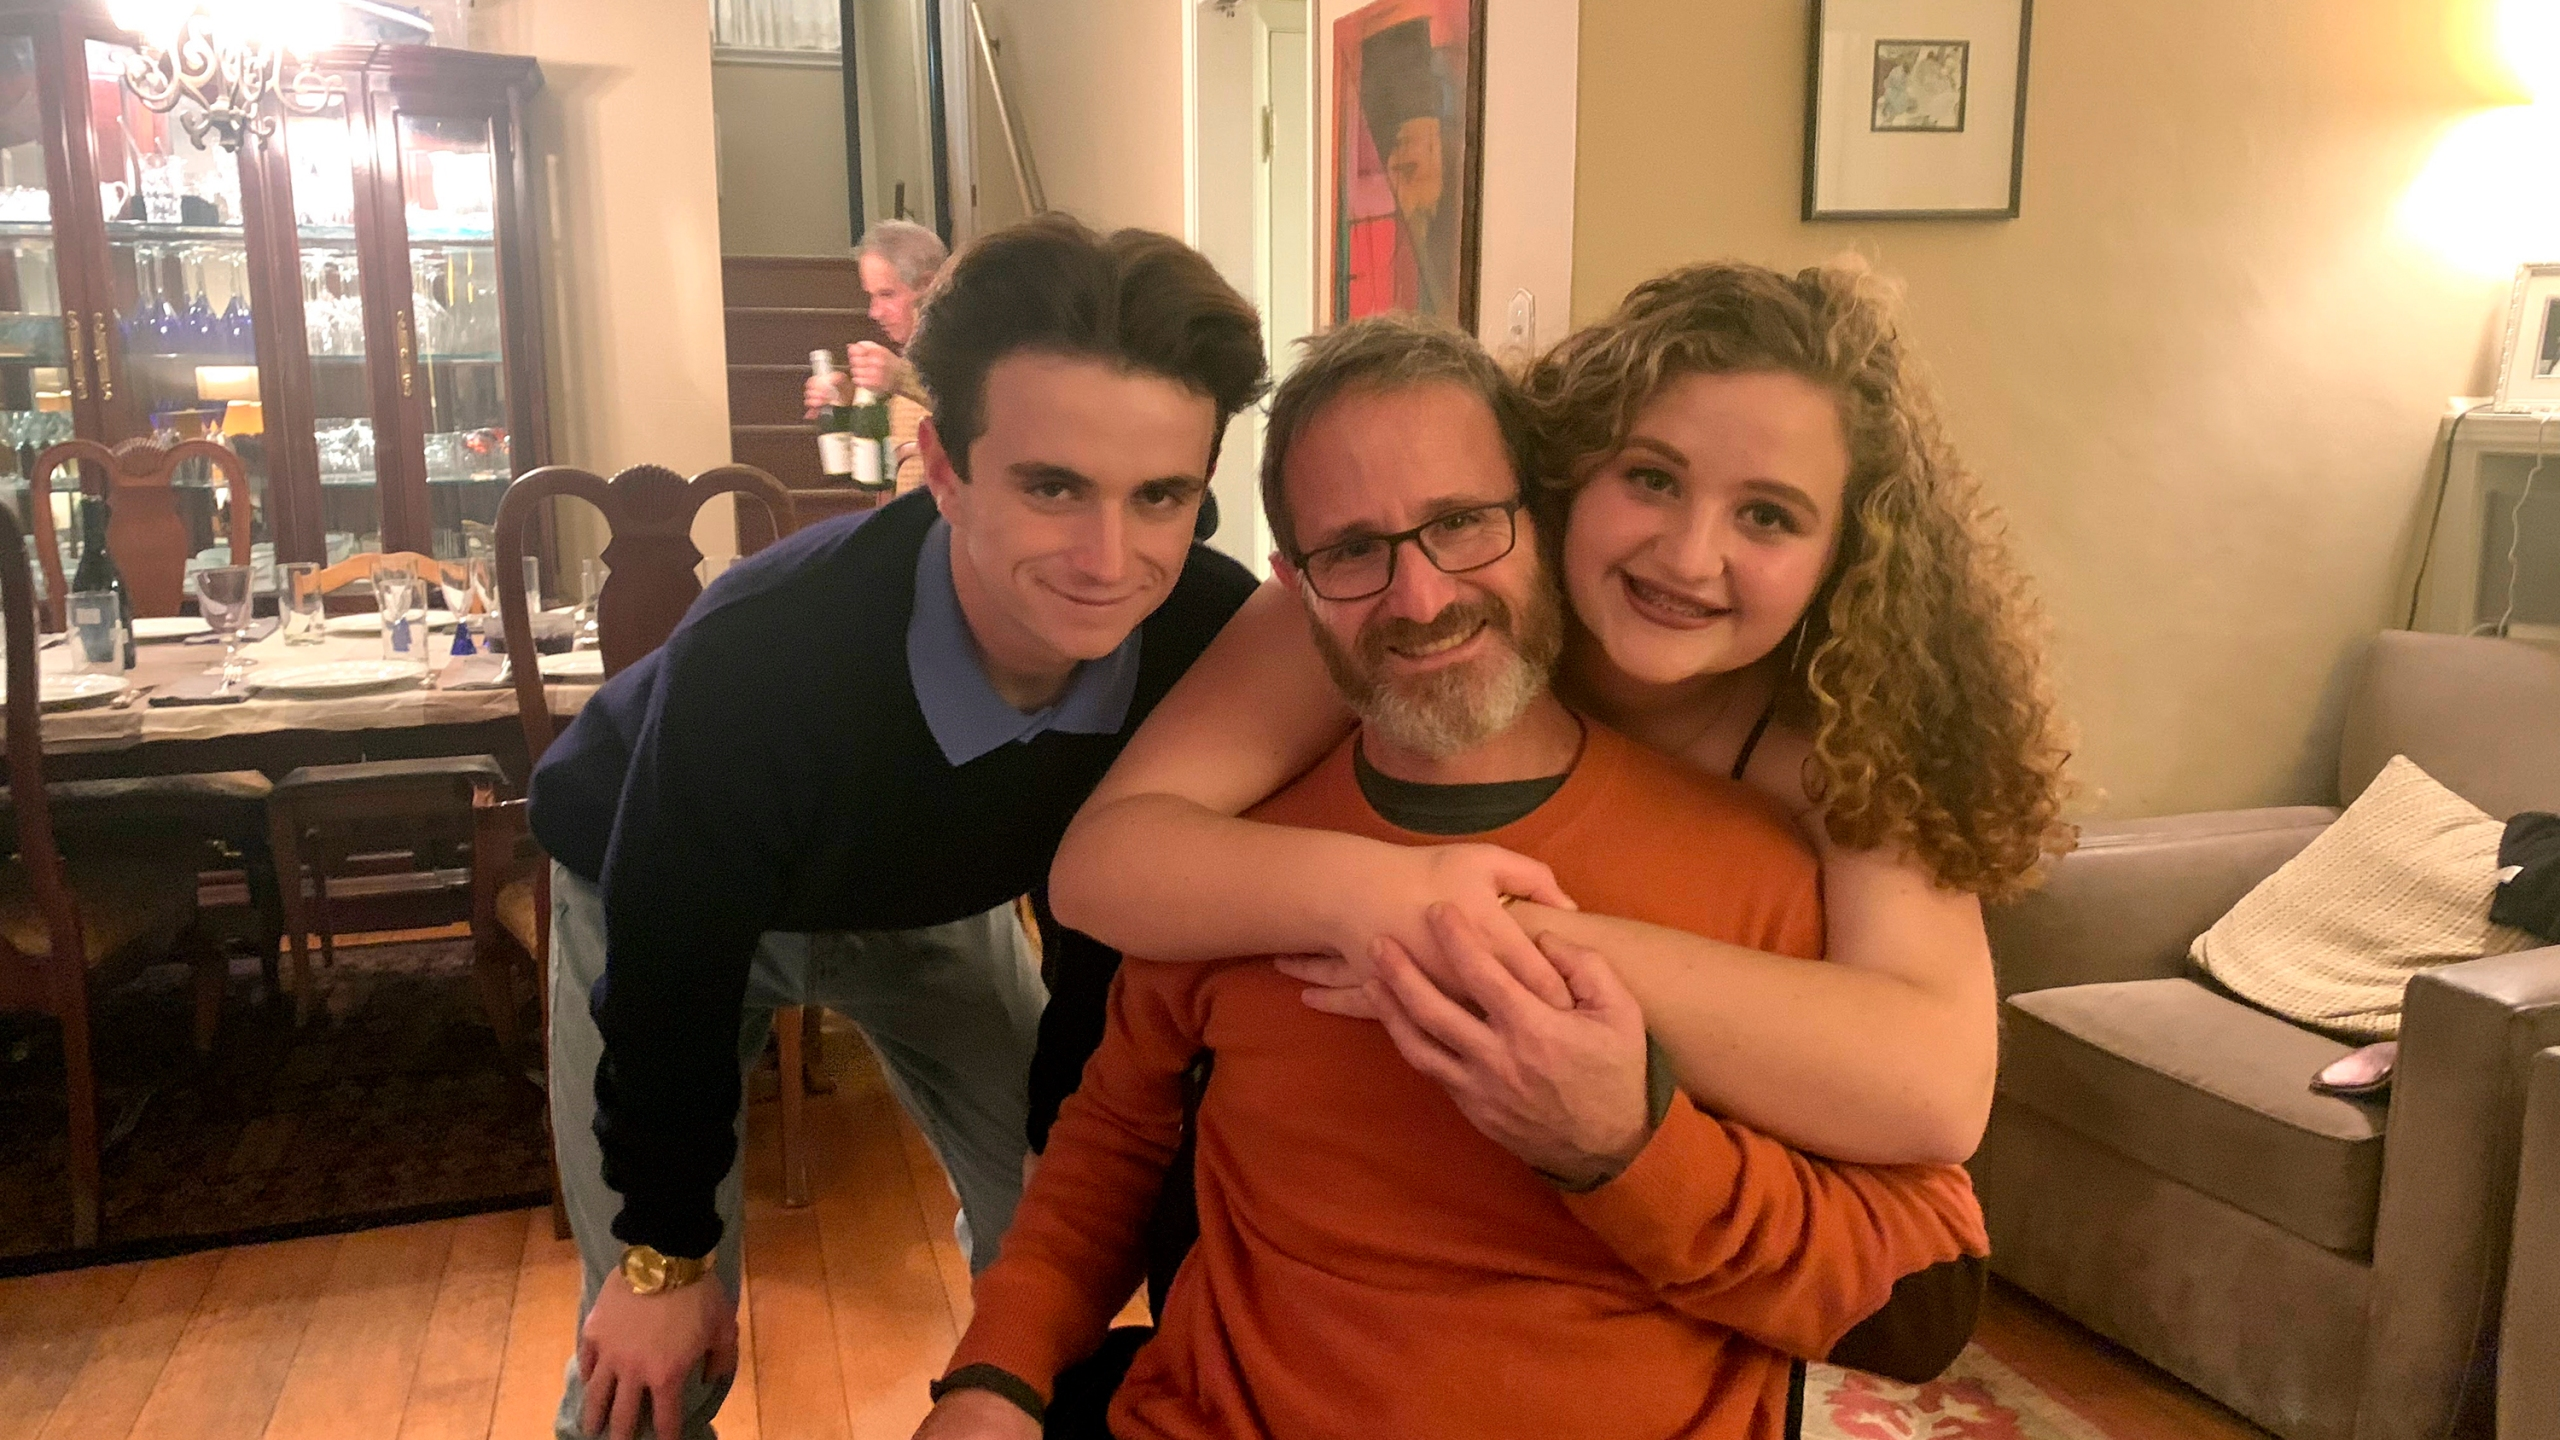 In this November 2019 photo provided by Samuel Kolb, he poses for a photo with his son Jacob and daughter Lexi in San Mateo, Calif. (Elizabeth Robillard/Courtesy of Samuel Kolb via AP)